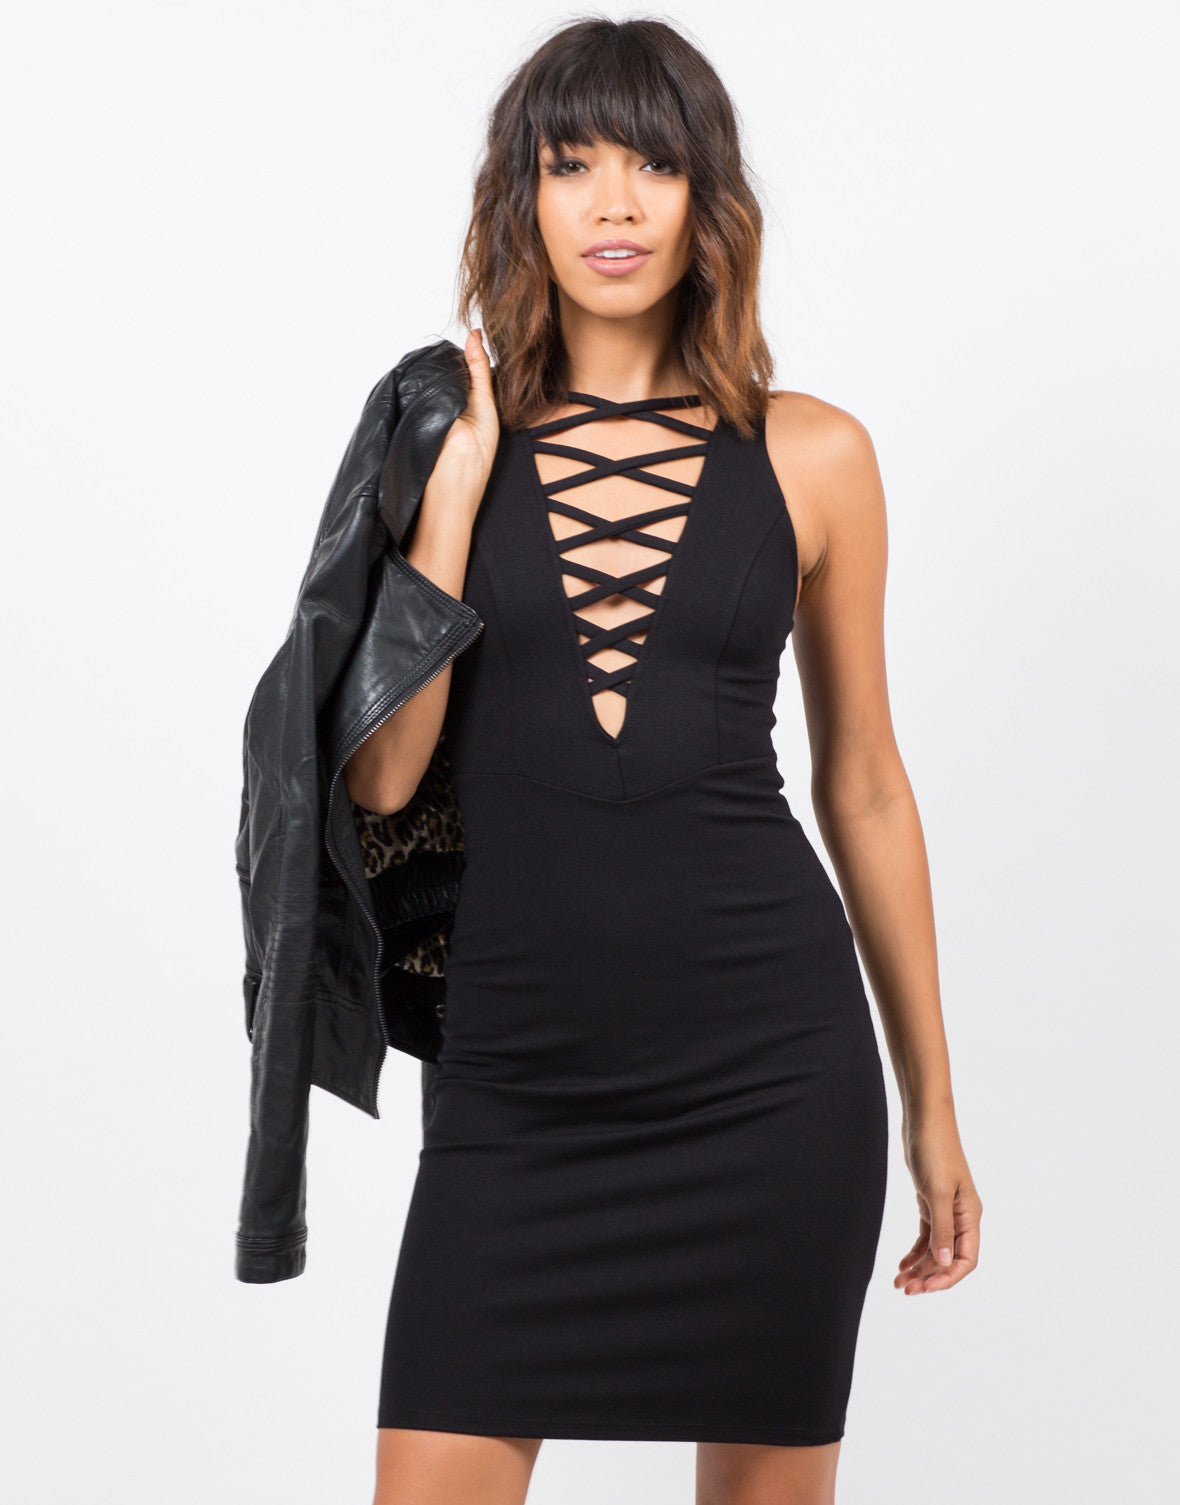 Bodycon dress to hide stomach